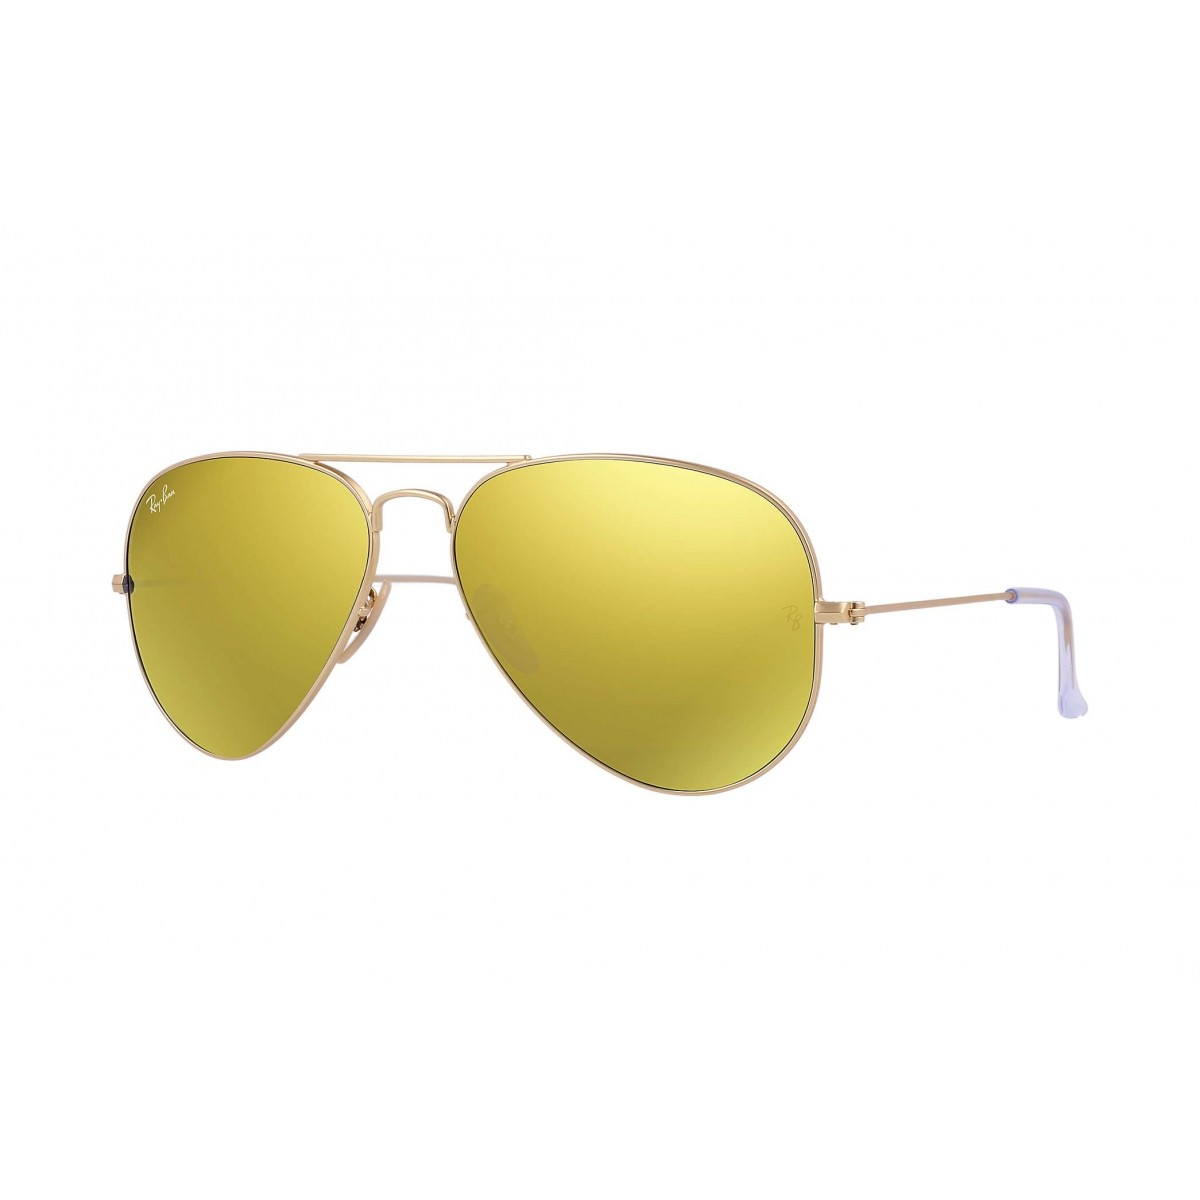 RB3025 112/93 58-14 AVIATOR